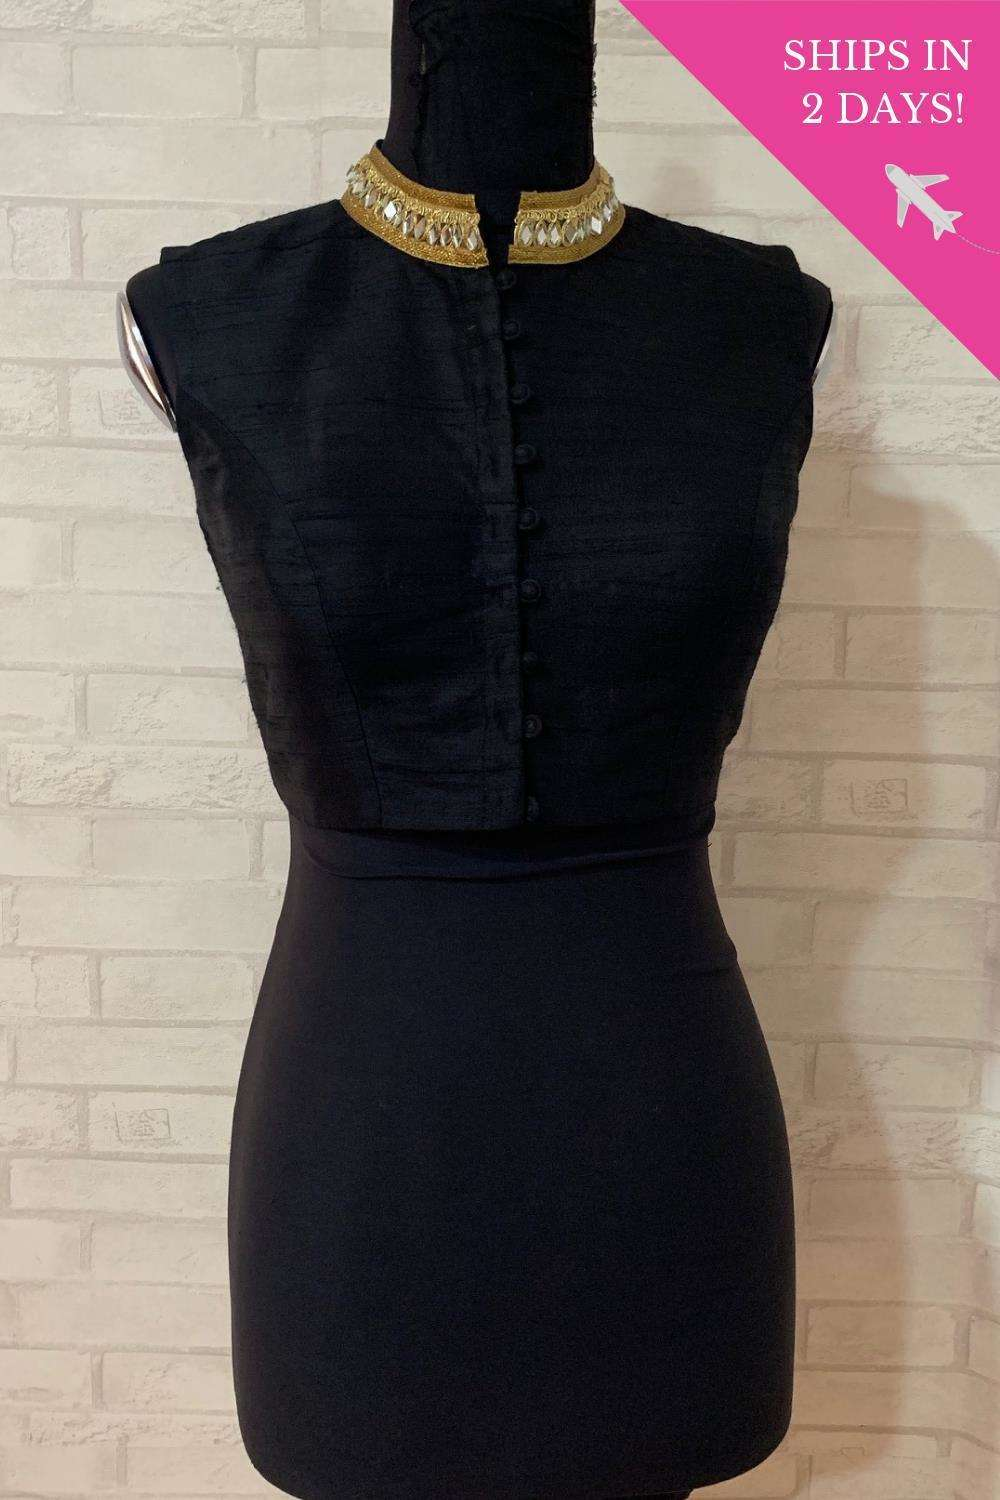 Black chinese collar blouse; Size: 38